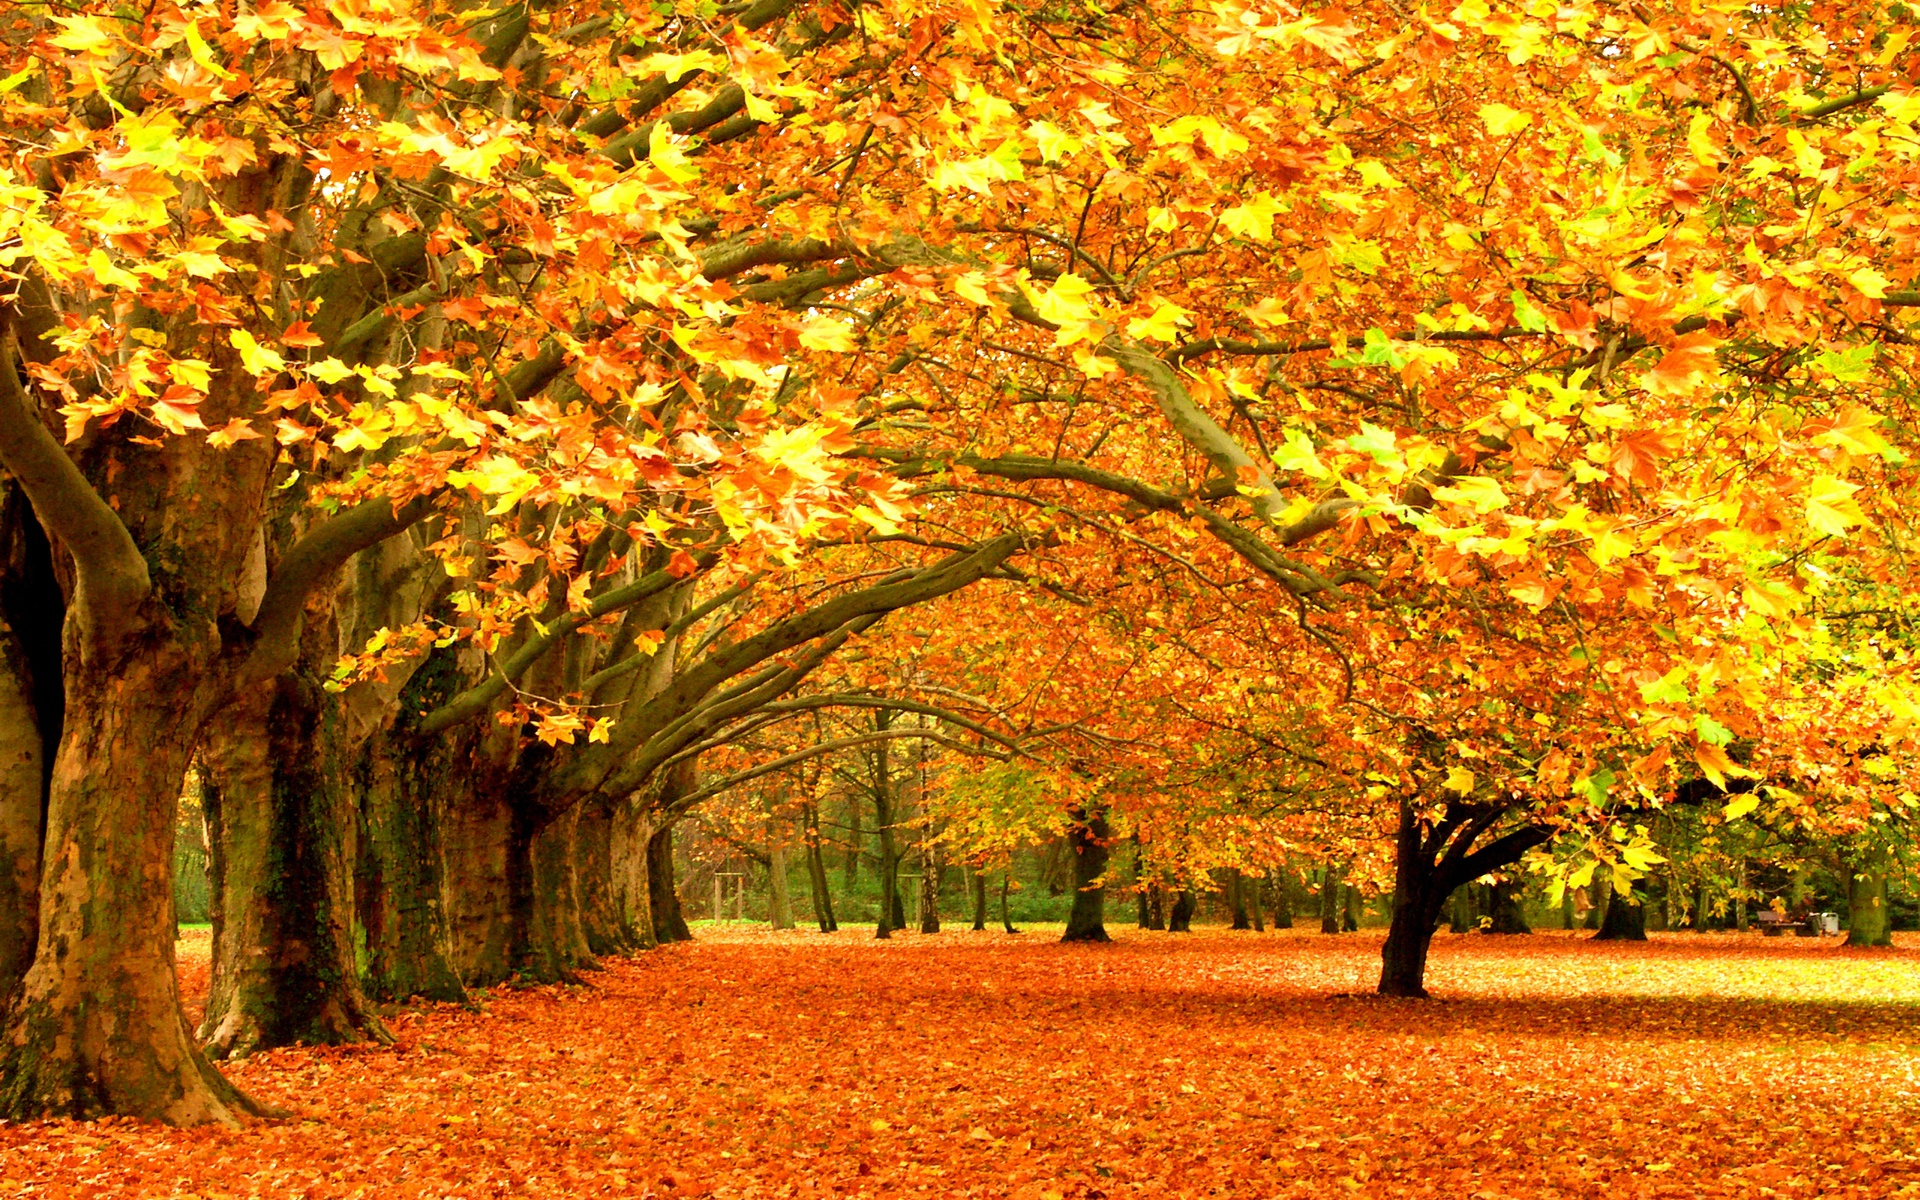 Wallpapers autumn leaf fall leaves trees desktop HD Desktop 1920x1200